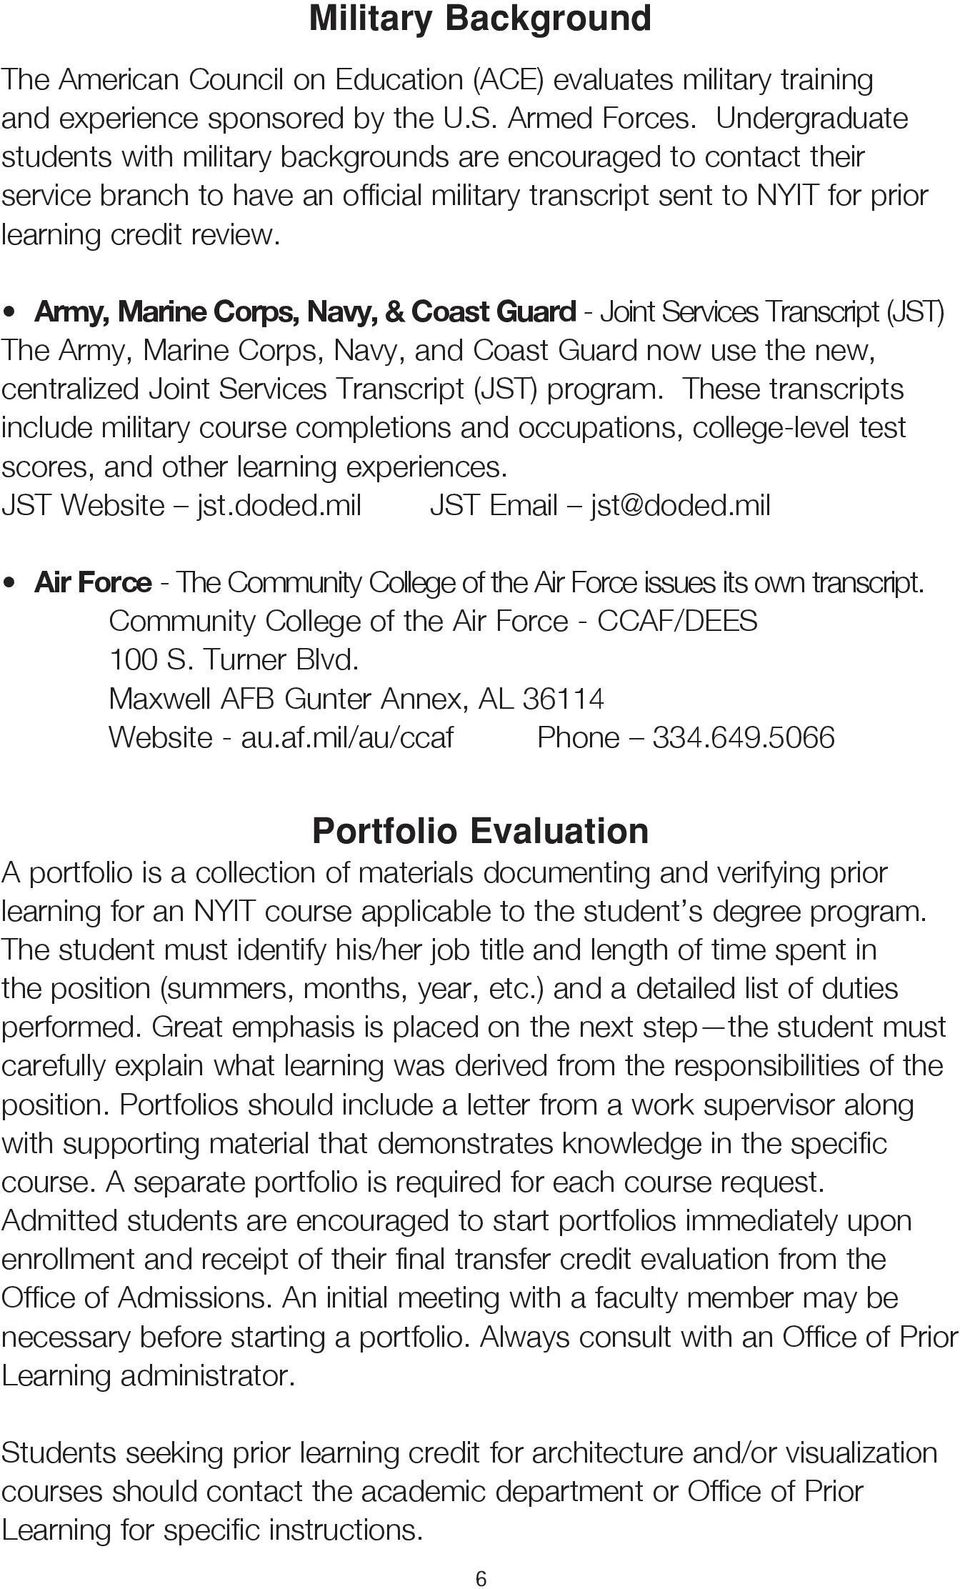 Army, Marine Corps, Navy, & Coast Guard - Joint Services Transcript (JST) The Army, Marine Corps, Navy, and Coast Guard now use the new, centralized Joint Services Transcript (JST) program.